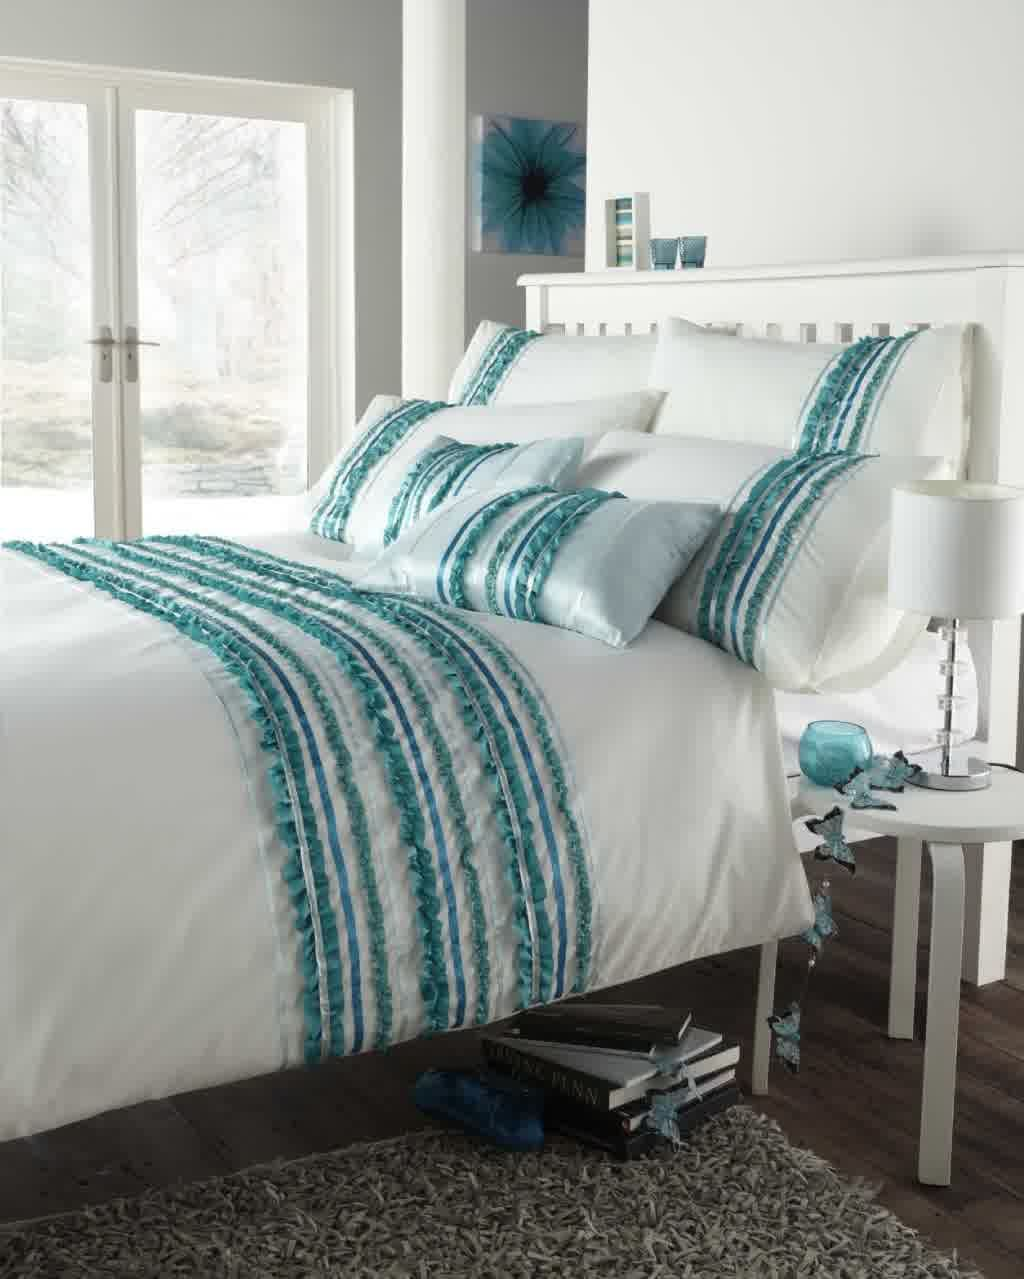 Sketch Of Turquoise And White Bedding Set Product Selections White Bed Set White Bedding Modern Duvet Covers Teal and white bedding sets